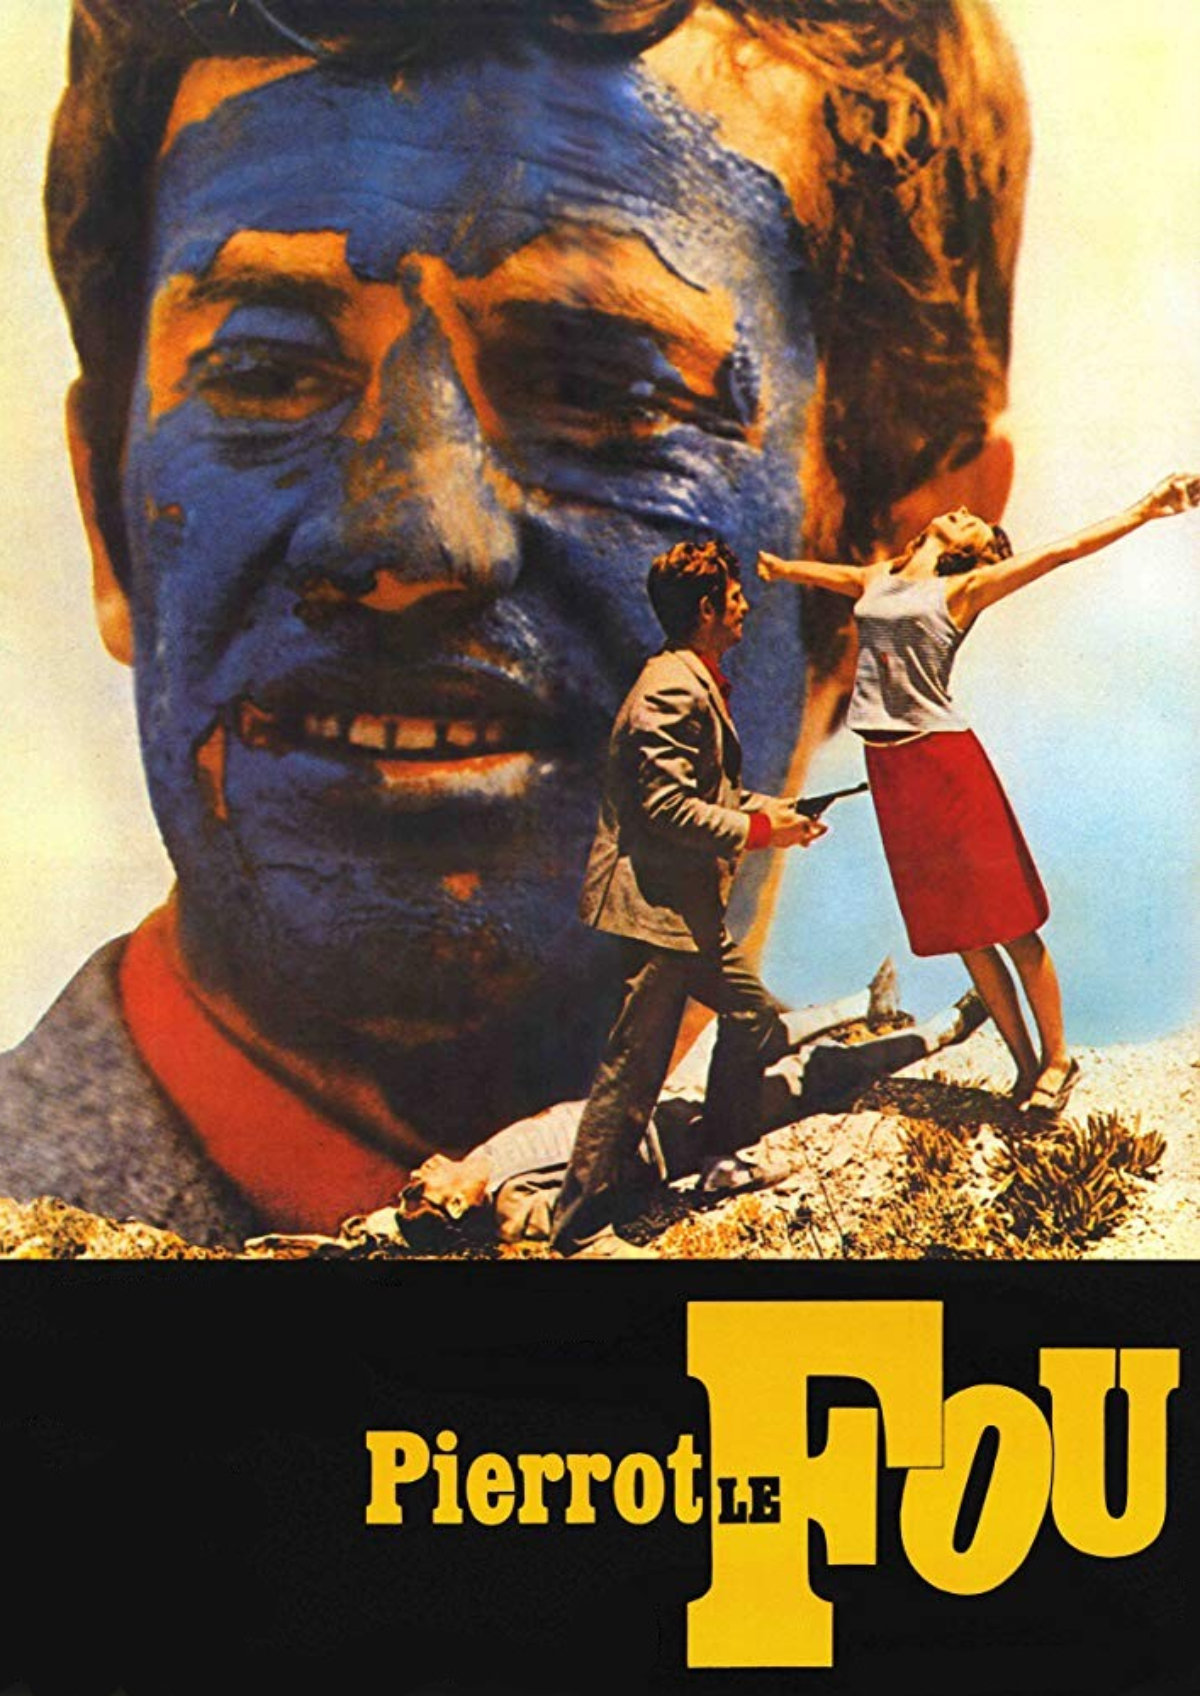 'Pierrot Le Fou' movie poster